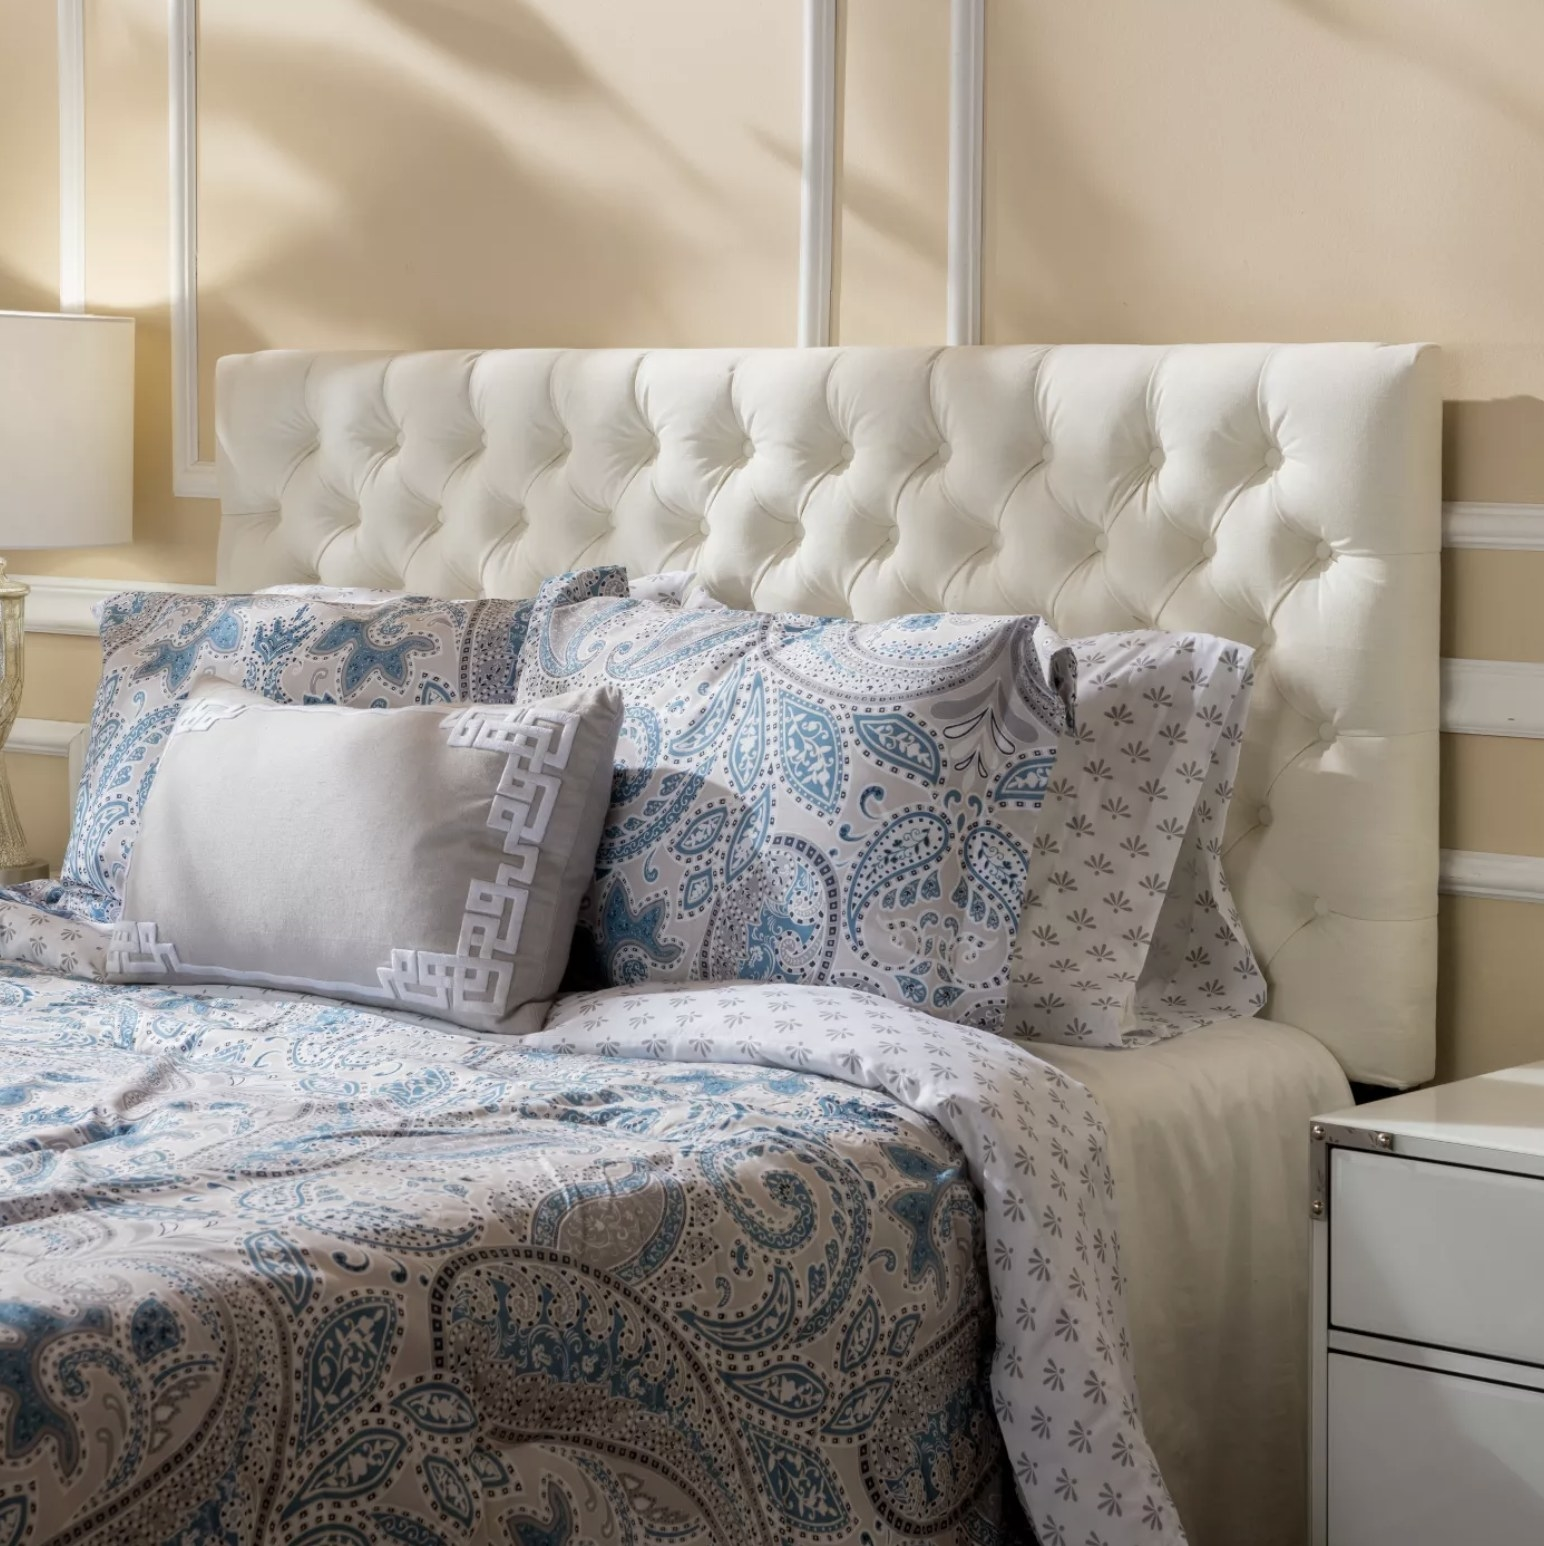 A white diamond button-tufted headboard behind a bed with paisley bedsheets and decorative pillows